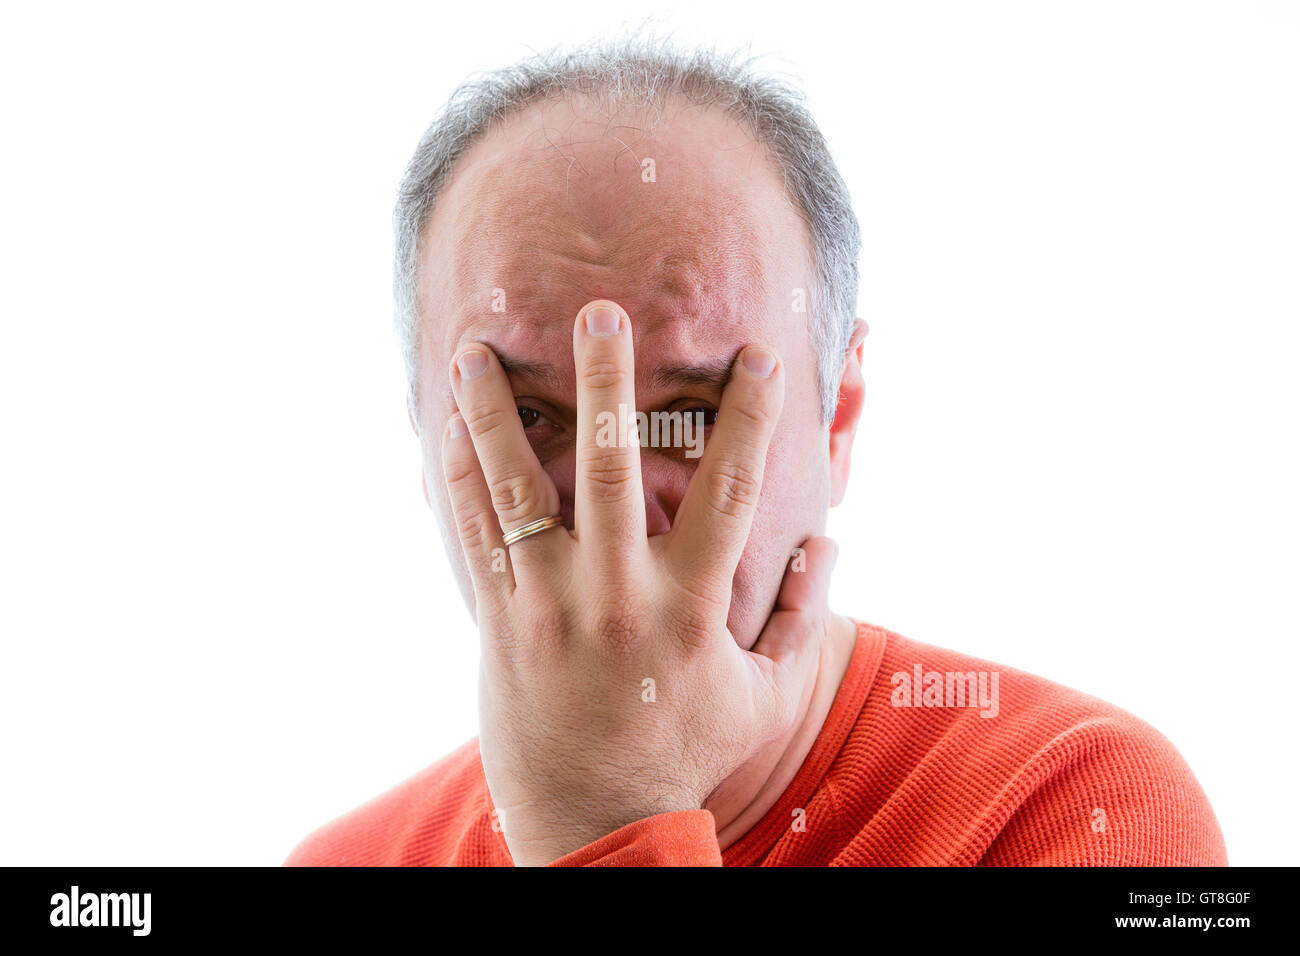 Guilty man filled with remorse hiding his face with his hand peering out between his splayed fingers, head and shoulders - Stock Image